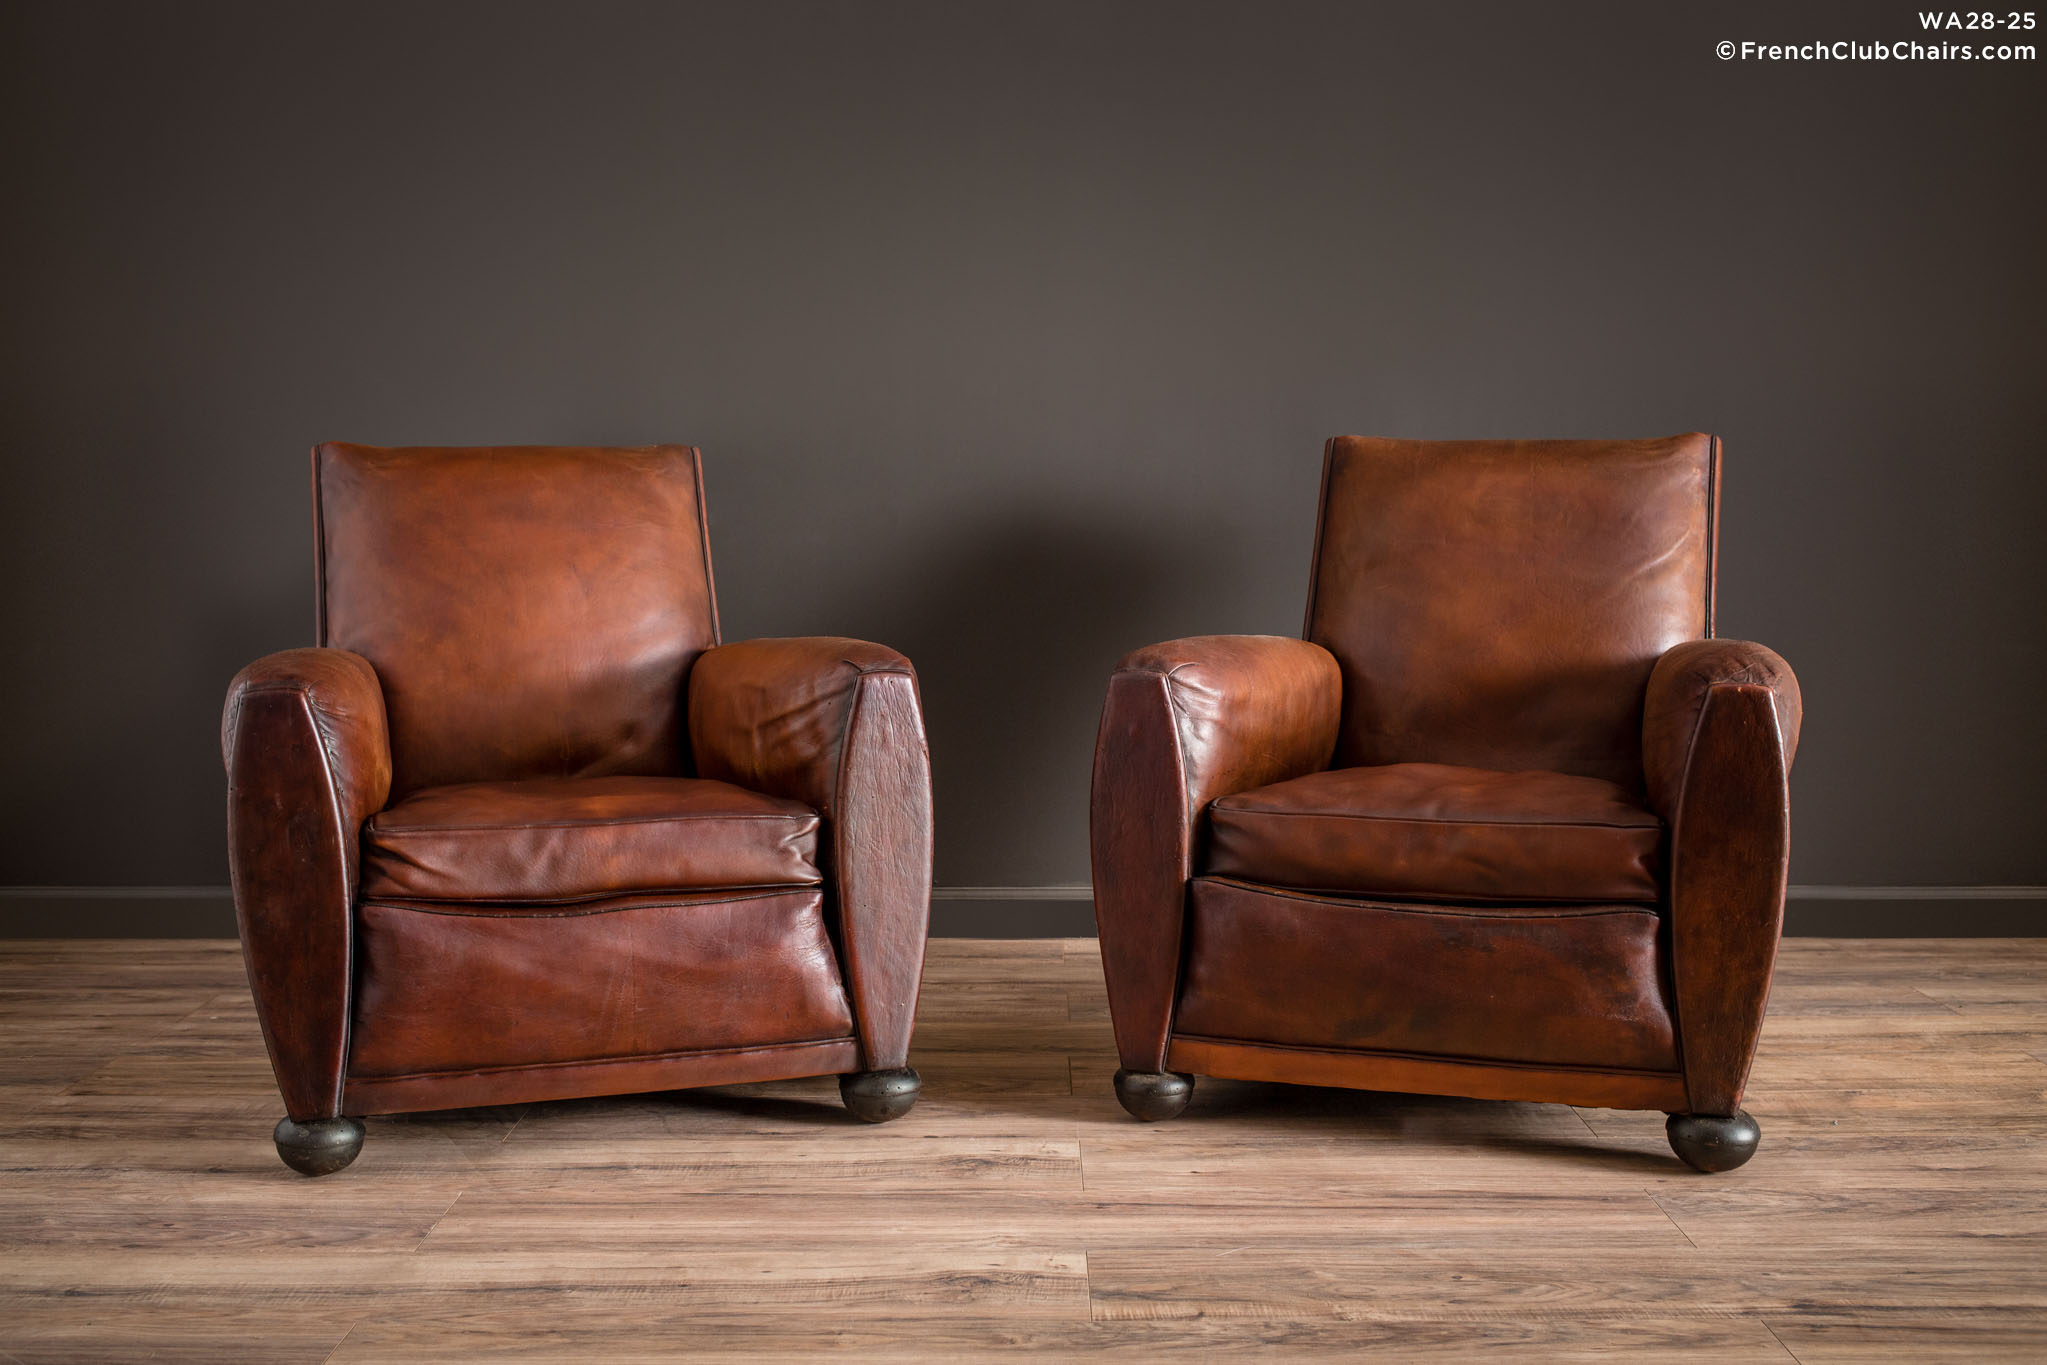 WA_28-25_Rennes_Squareback_Pair_R_1TQ1-williams-antiks-leather-french-club-chair-wa_fcccom